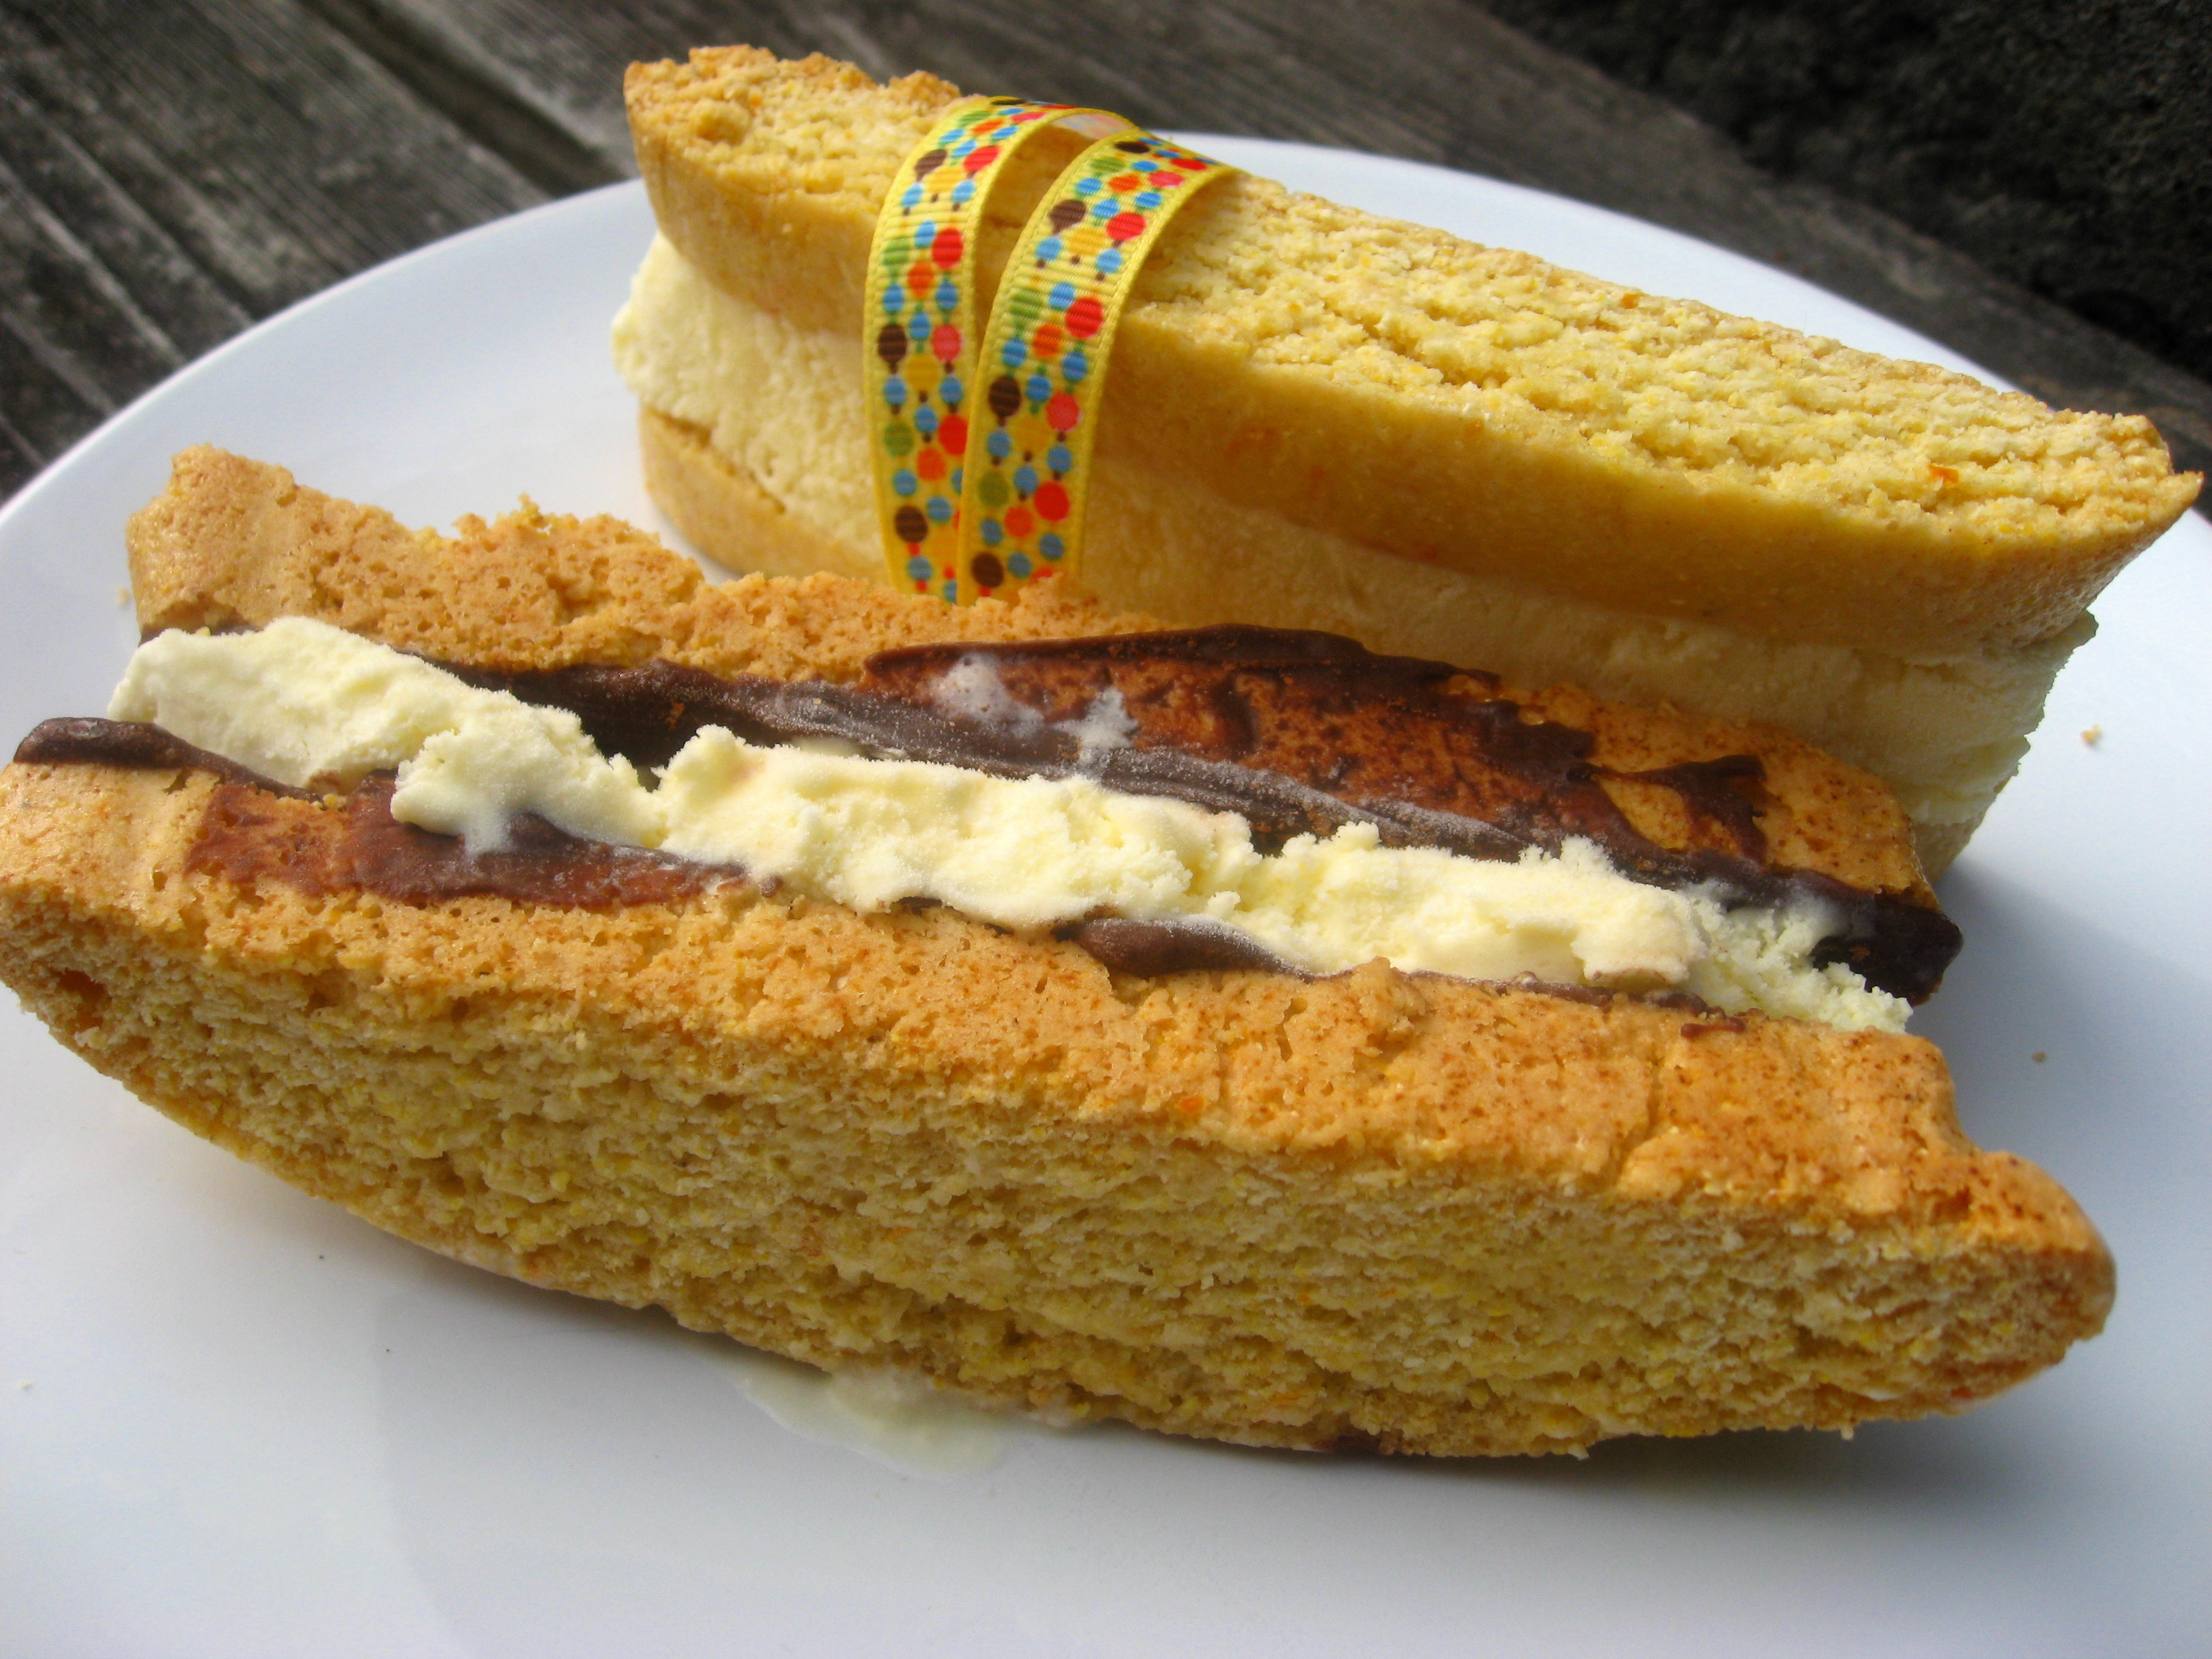 Summer of Sandwiches: Chocolate Citrus Biscotti with Orange Ice Cream